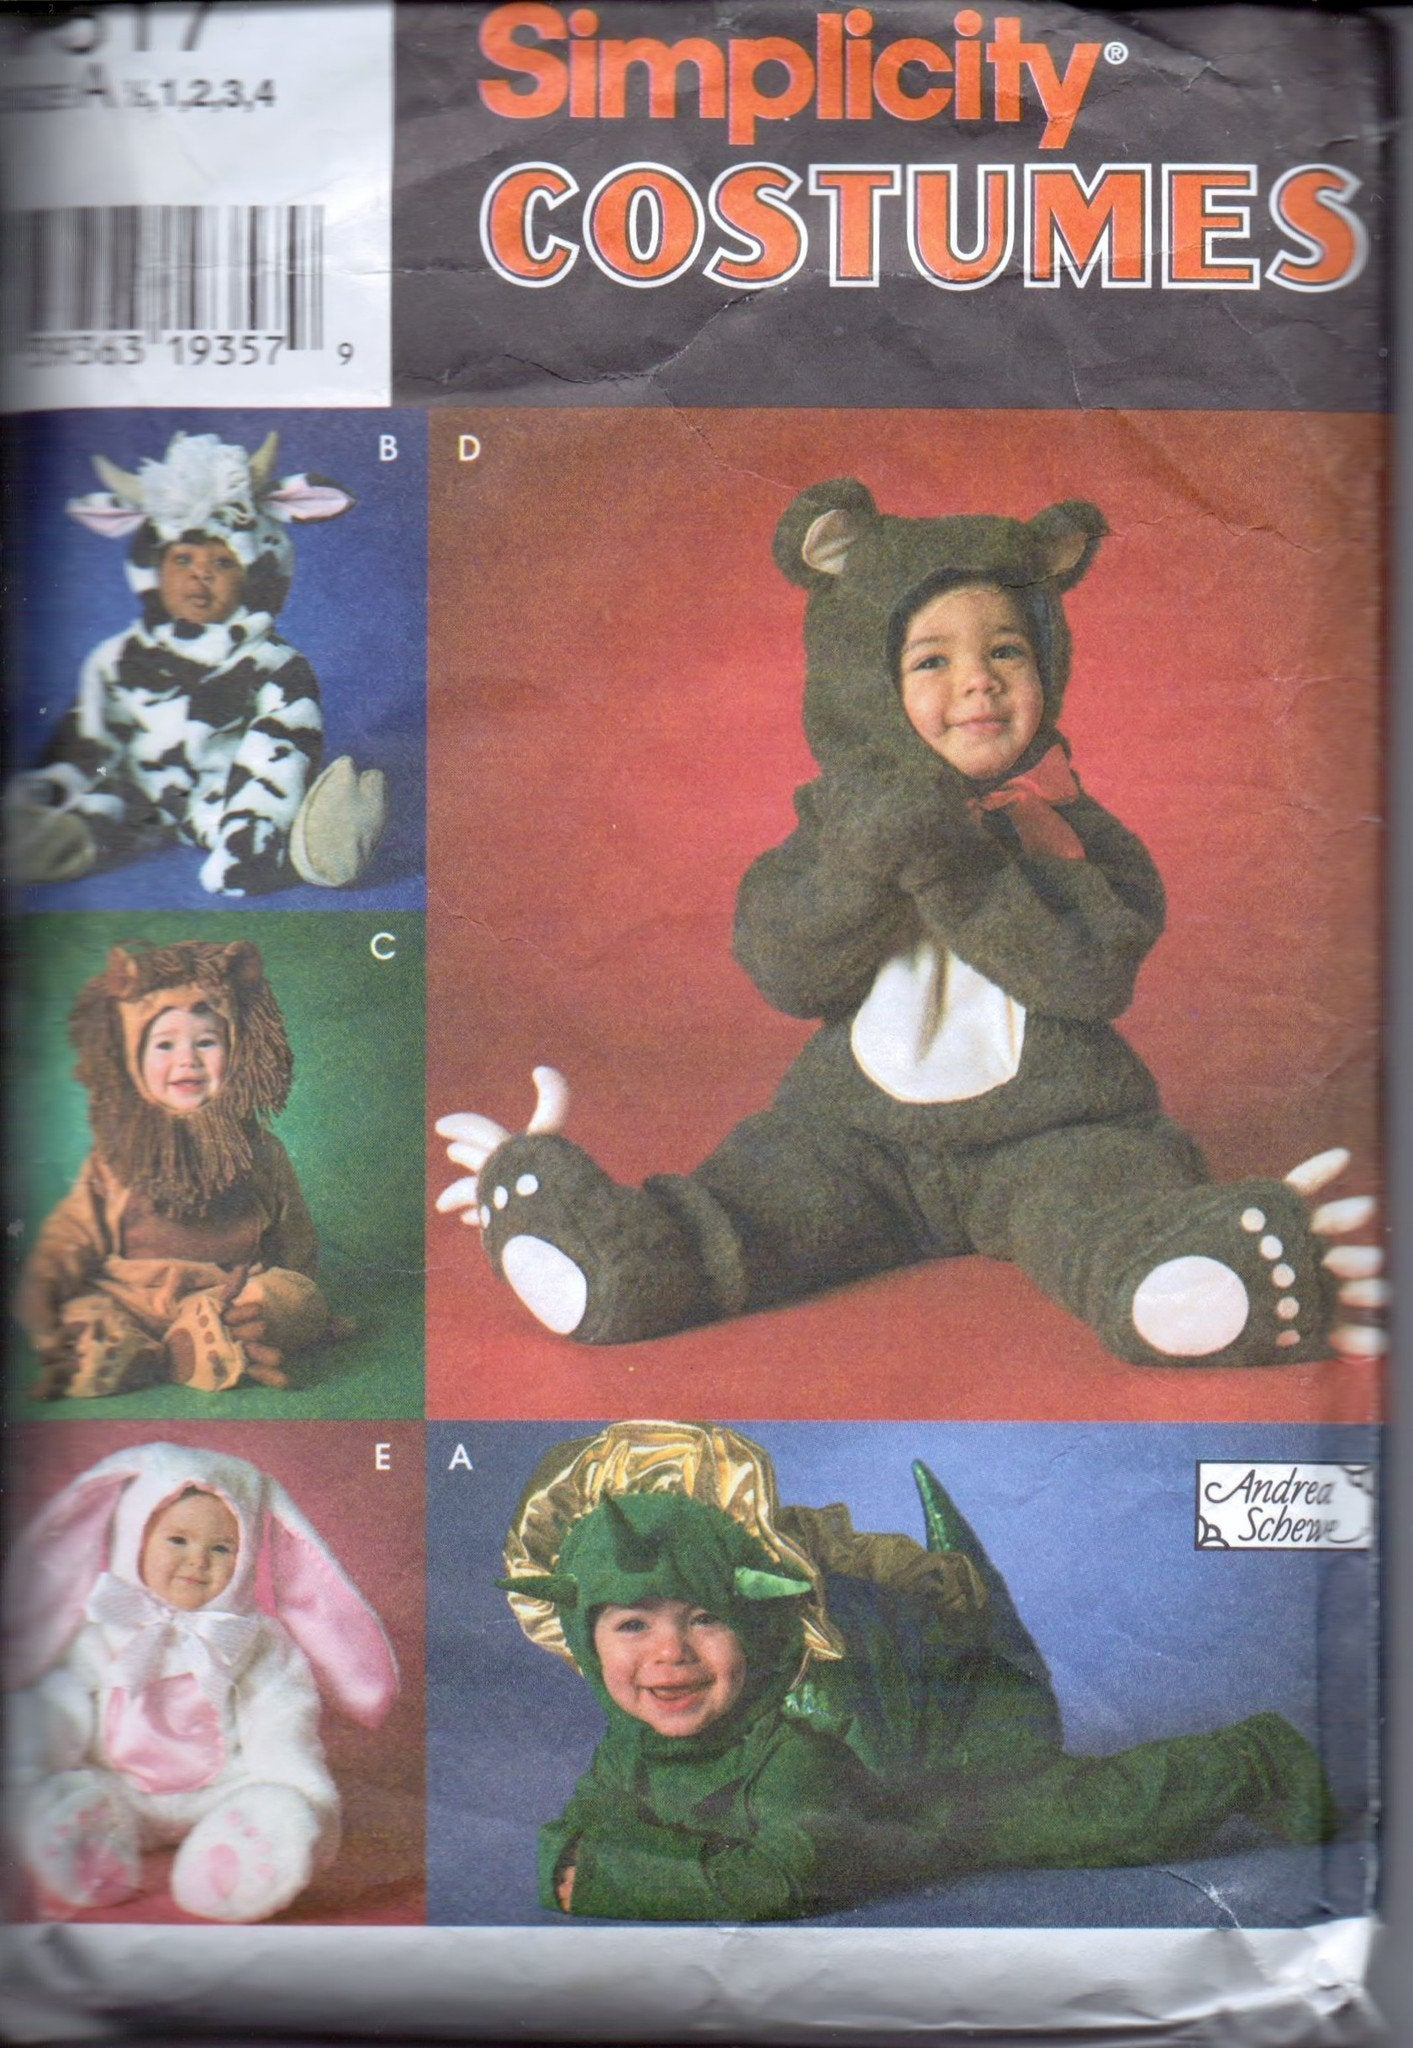 Simplicity 7317 Toddler Halloween Costume Pattern Dinosaur Lion Bunny Bear Cow Jumpsuit Hood - VintageStitching - Vintage Sewing Patterns